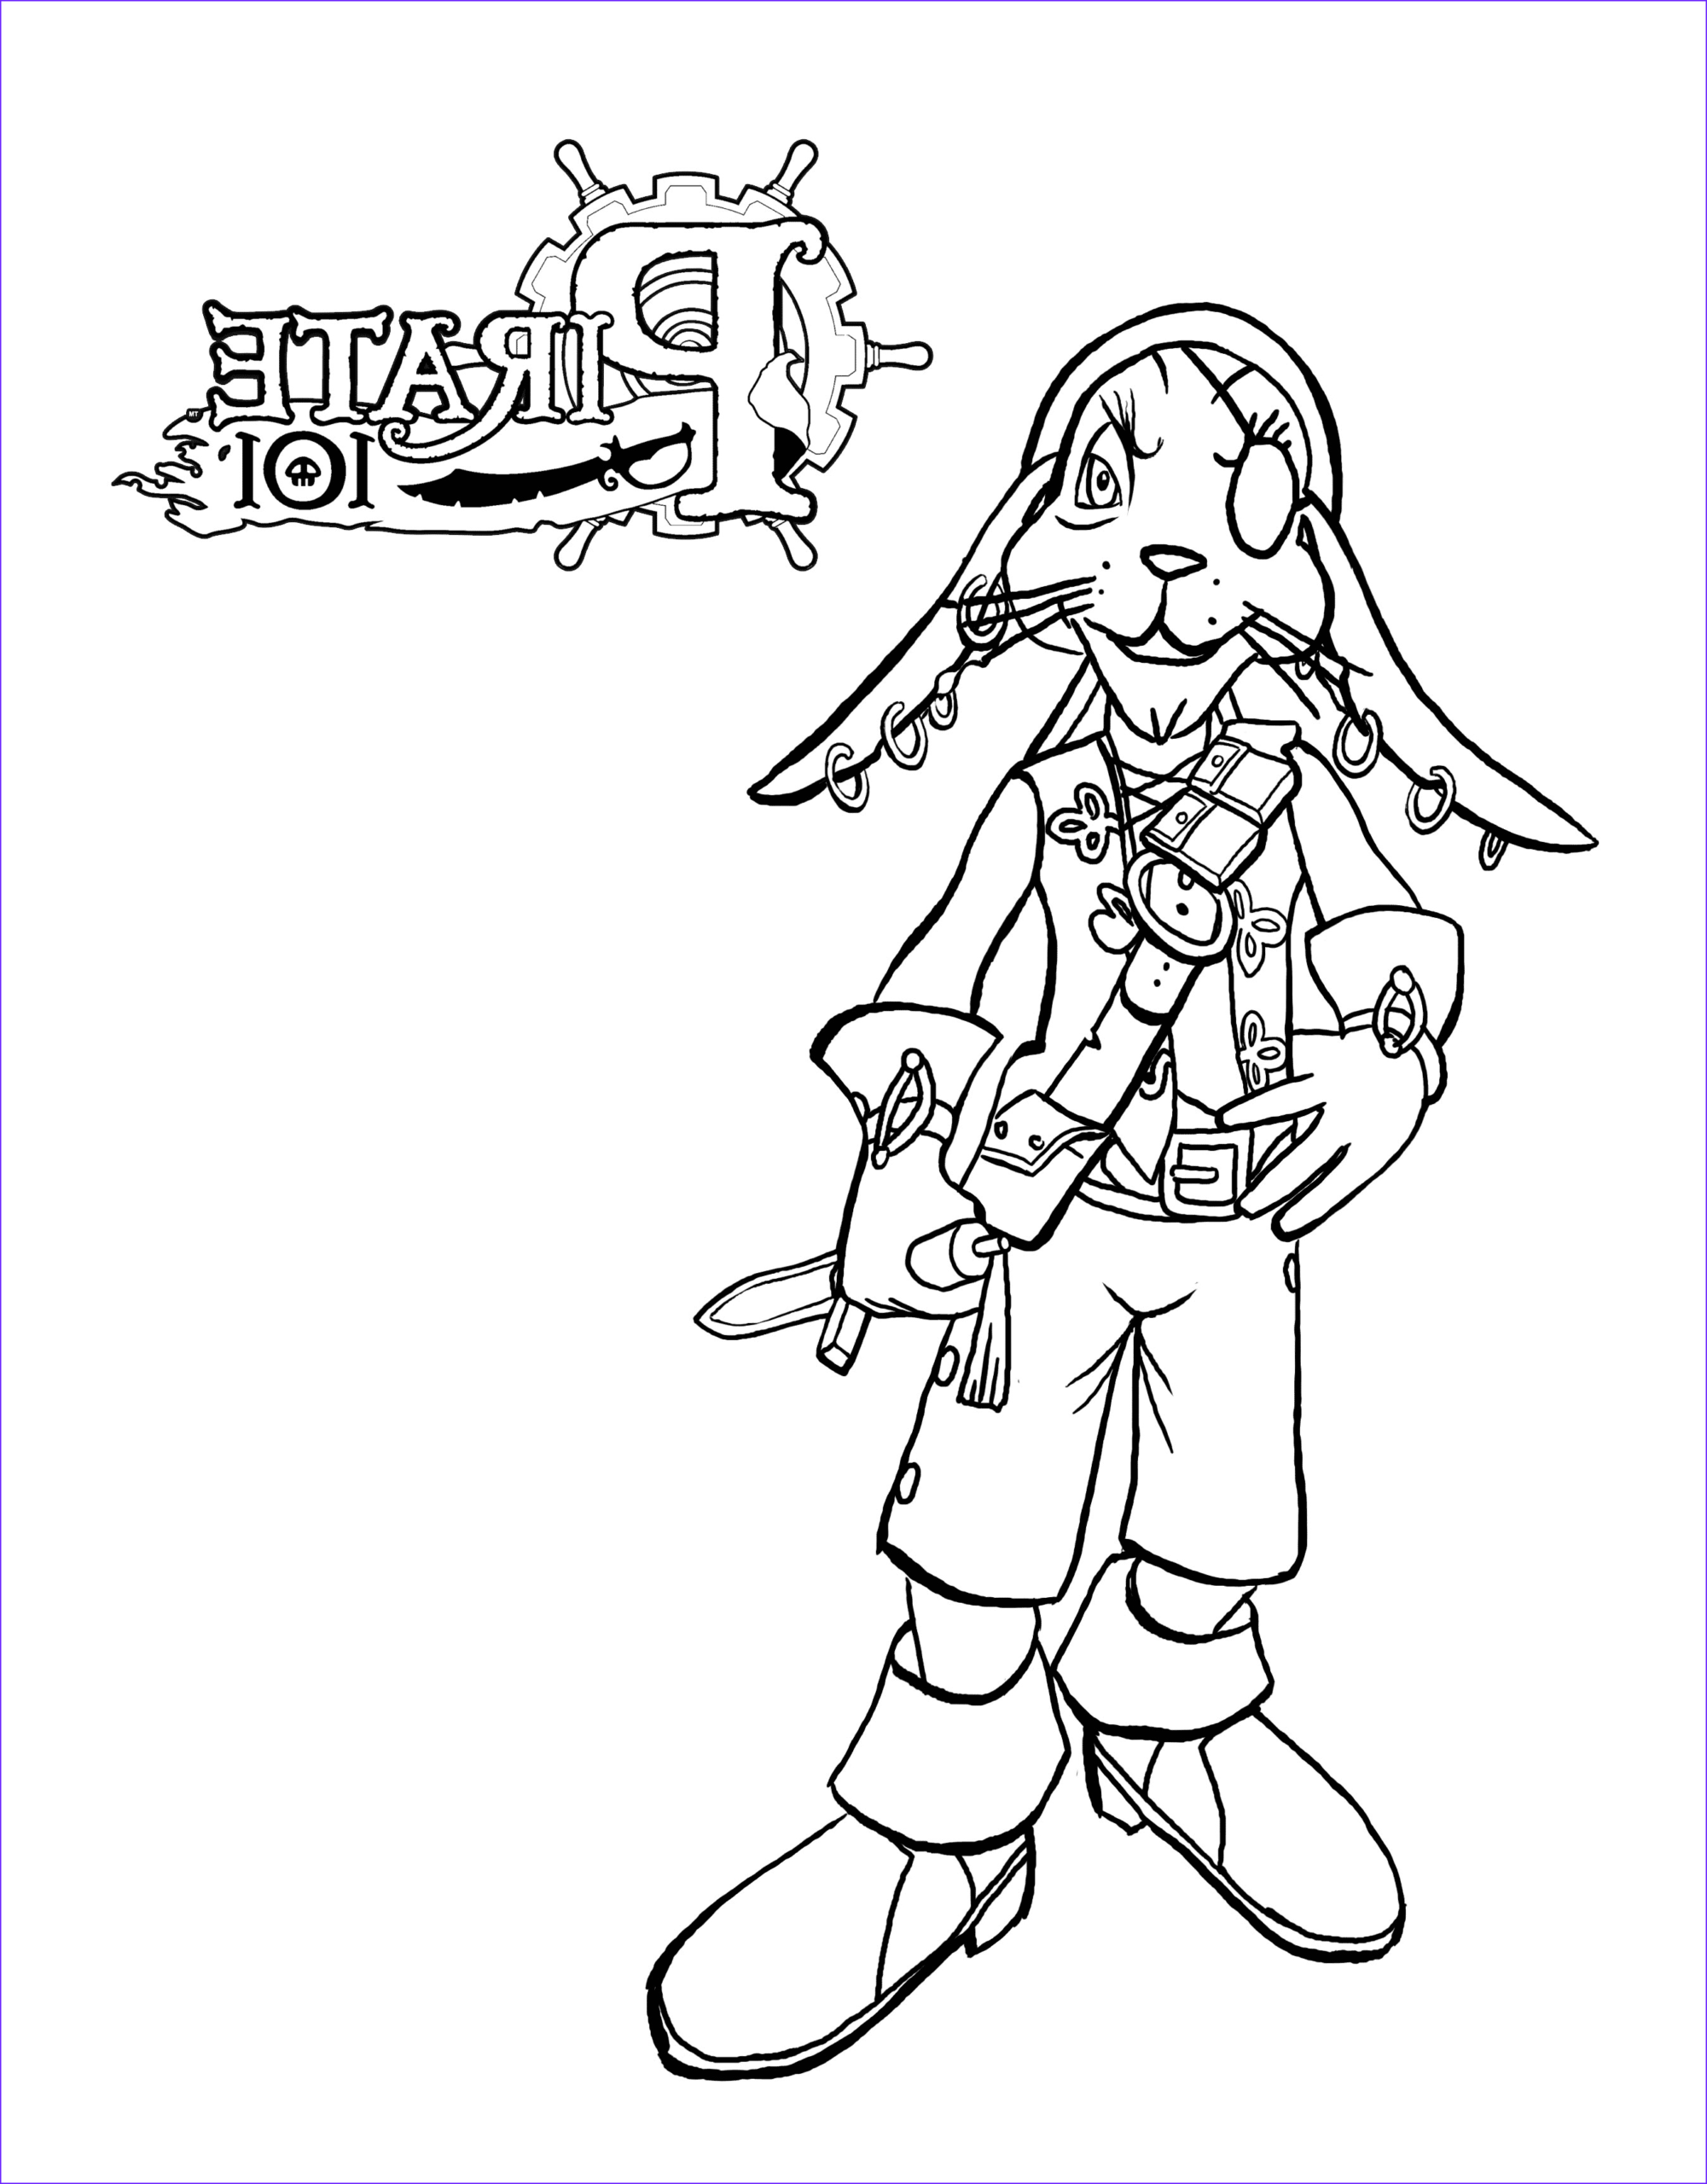 pirate101 coloring pages